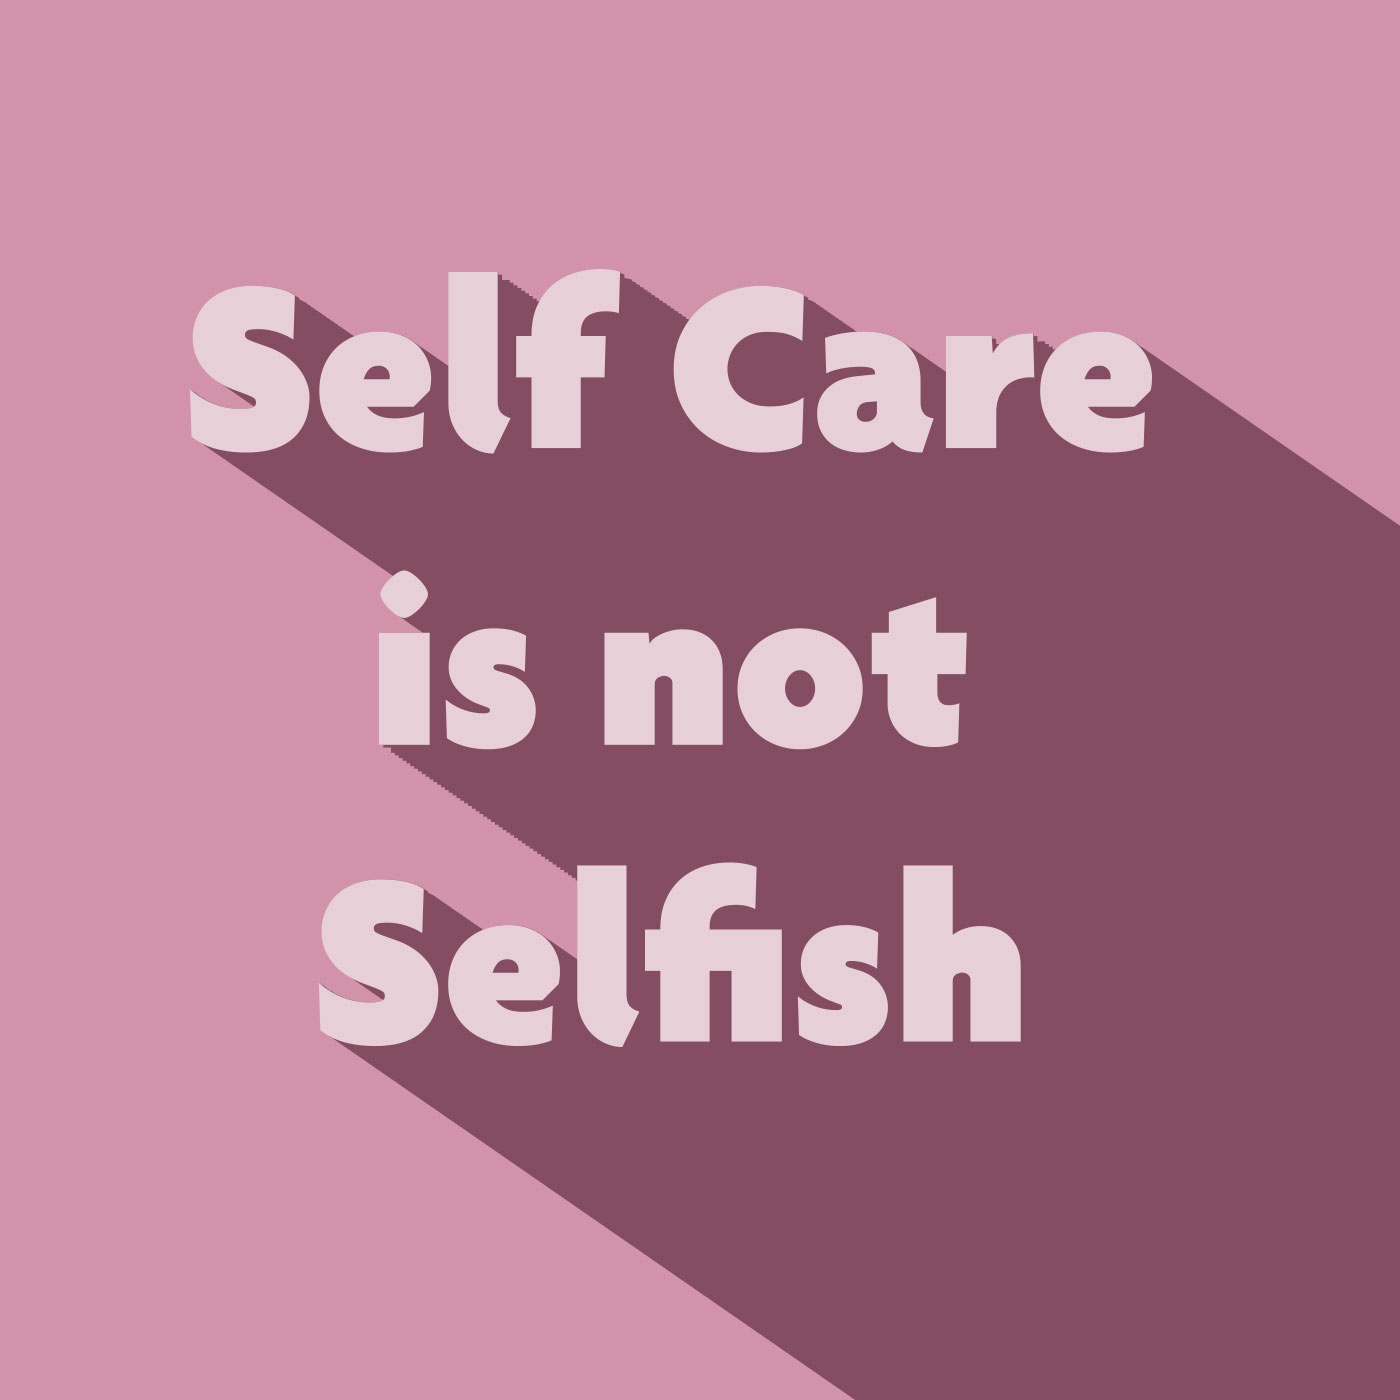 self-care-is-not-selfish.jpg